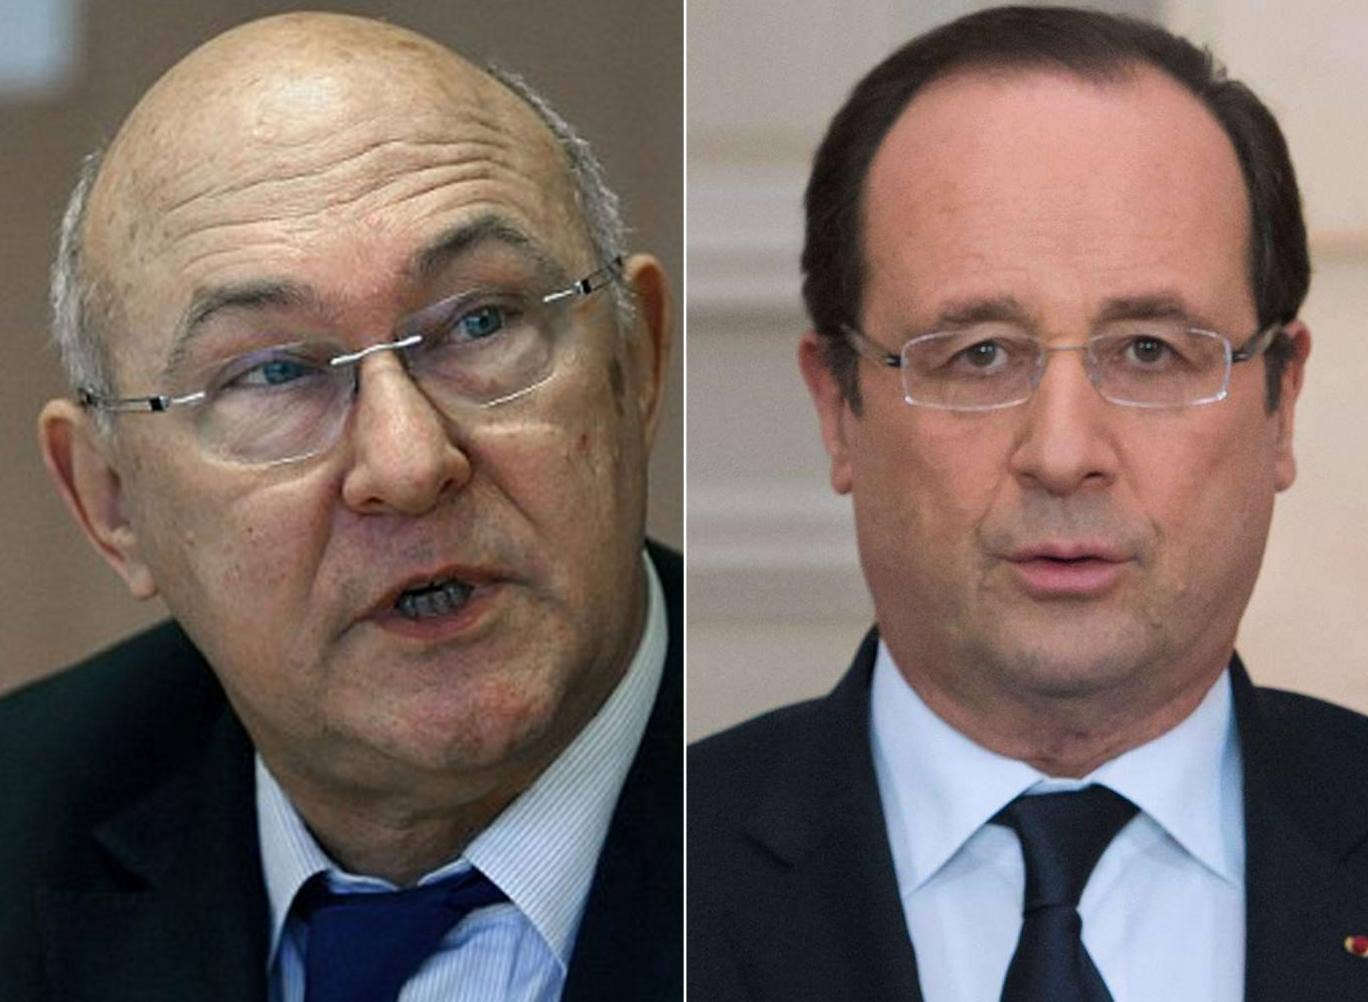 Michel Sapin and Francois Hollande